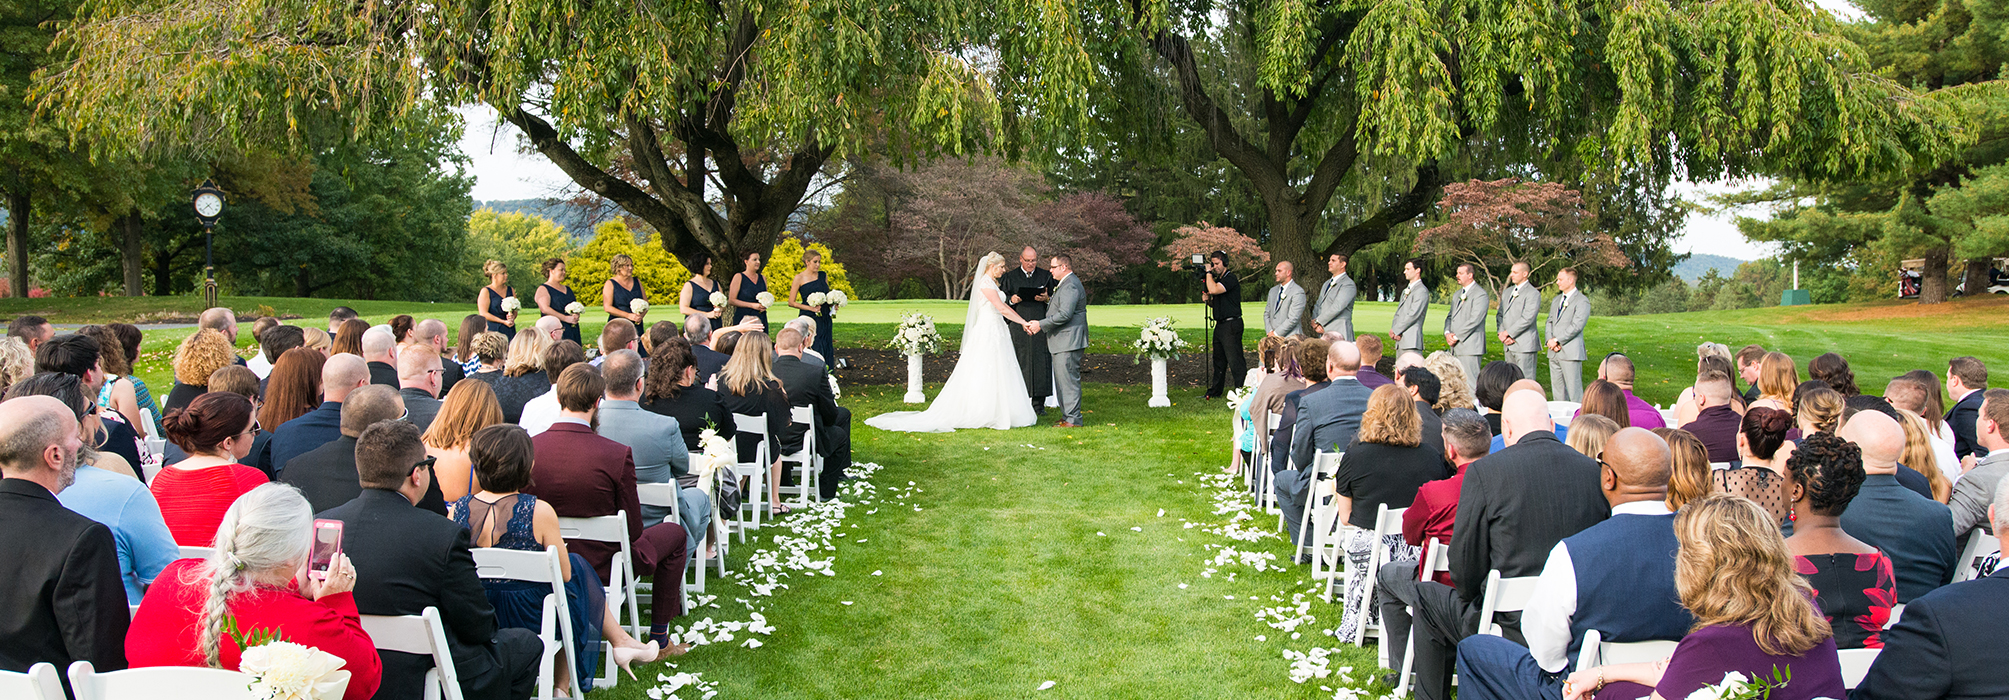 Weddings at Colonial Golf & Tennis Club